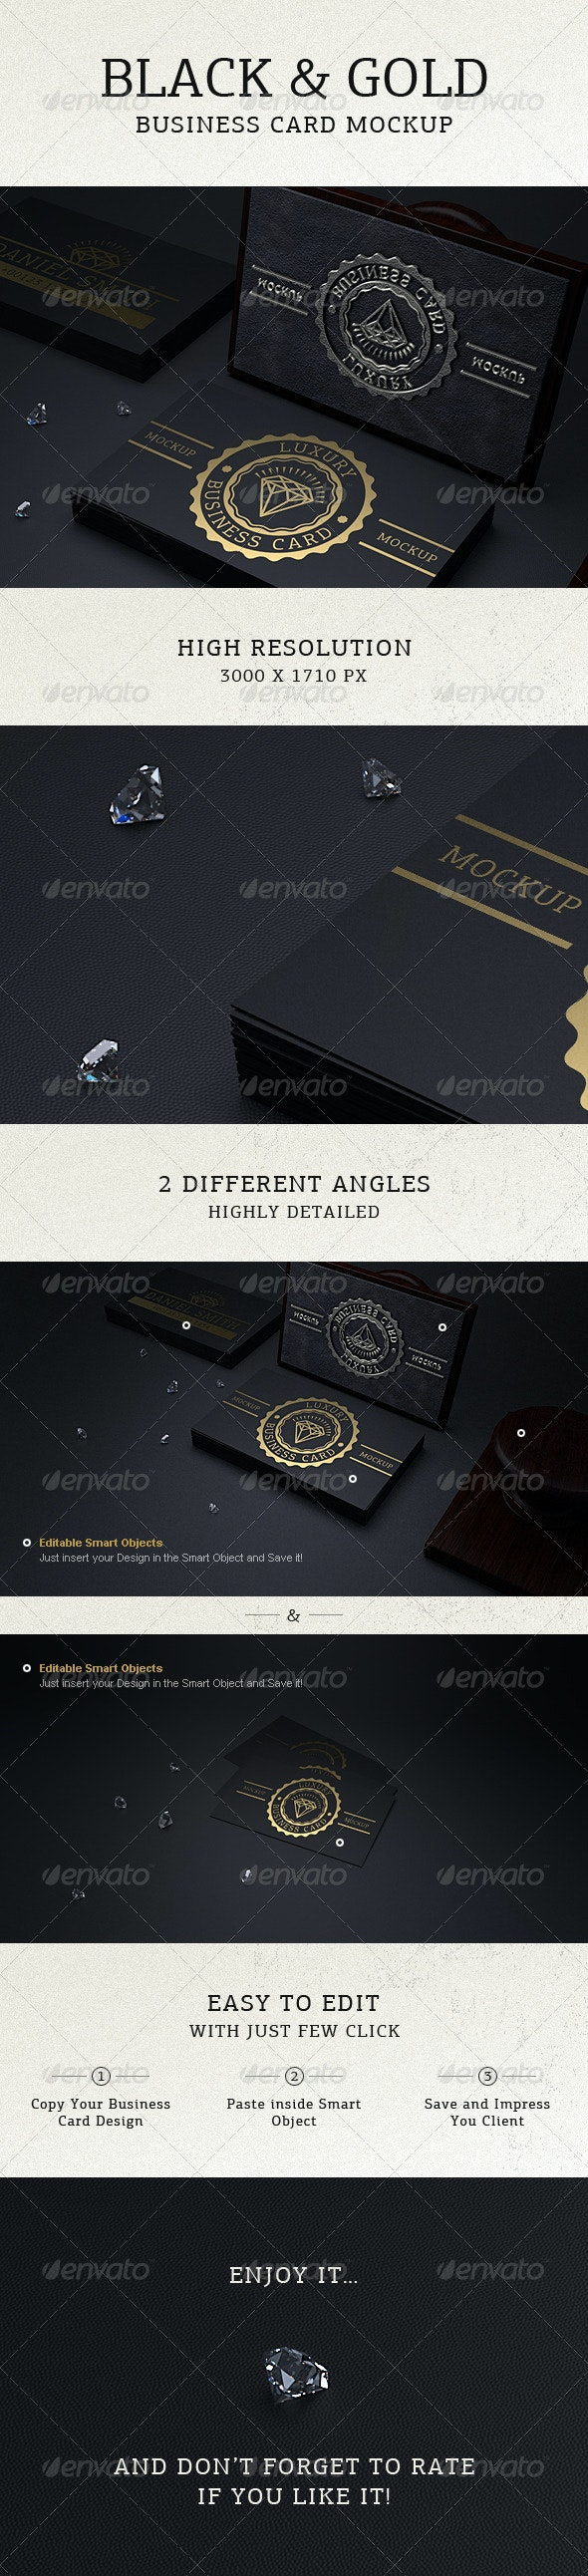 Photorealistic Black & Gold Business Card Mock Up - Business Cards Print